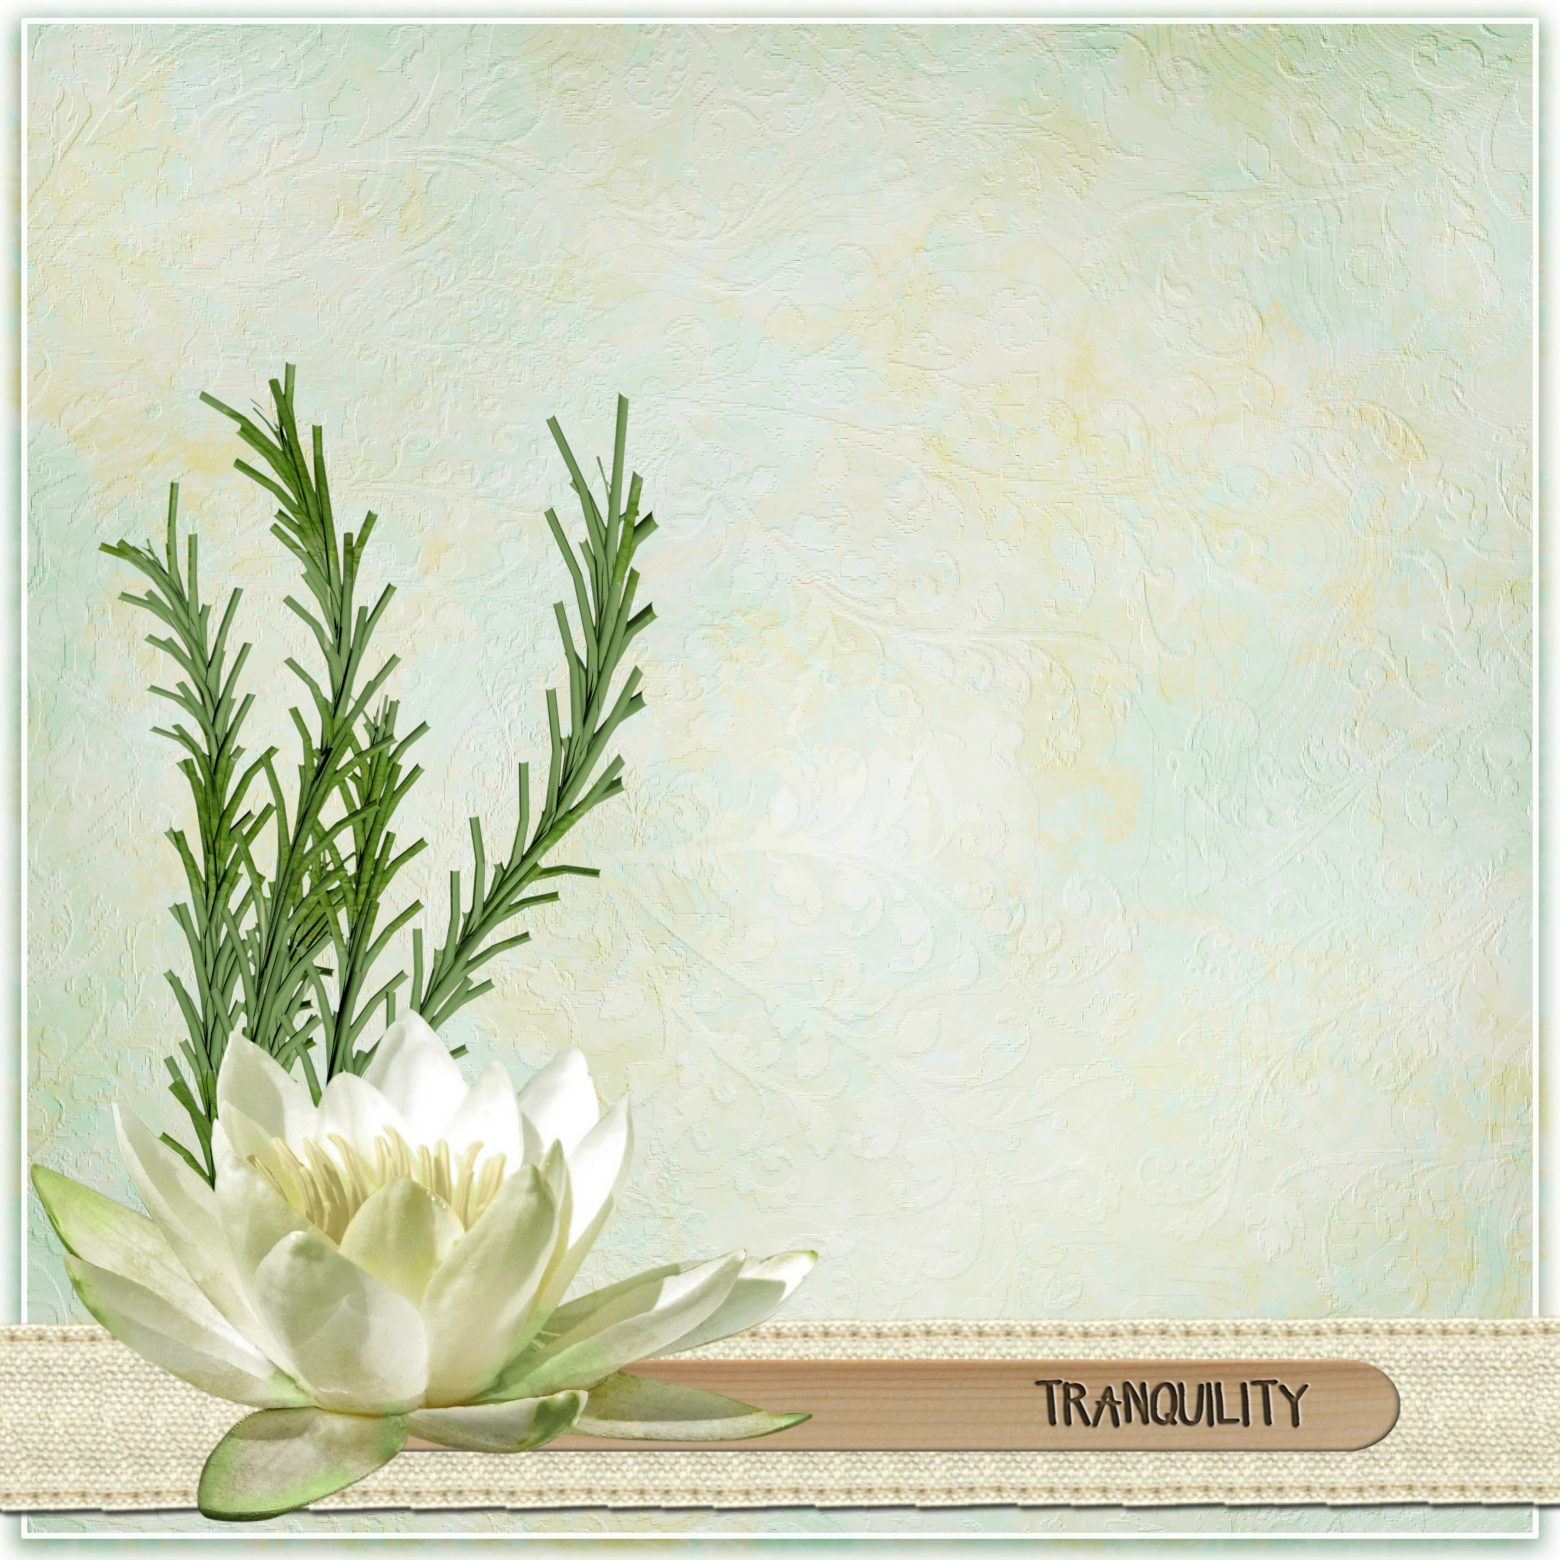 tranquility-1301899